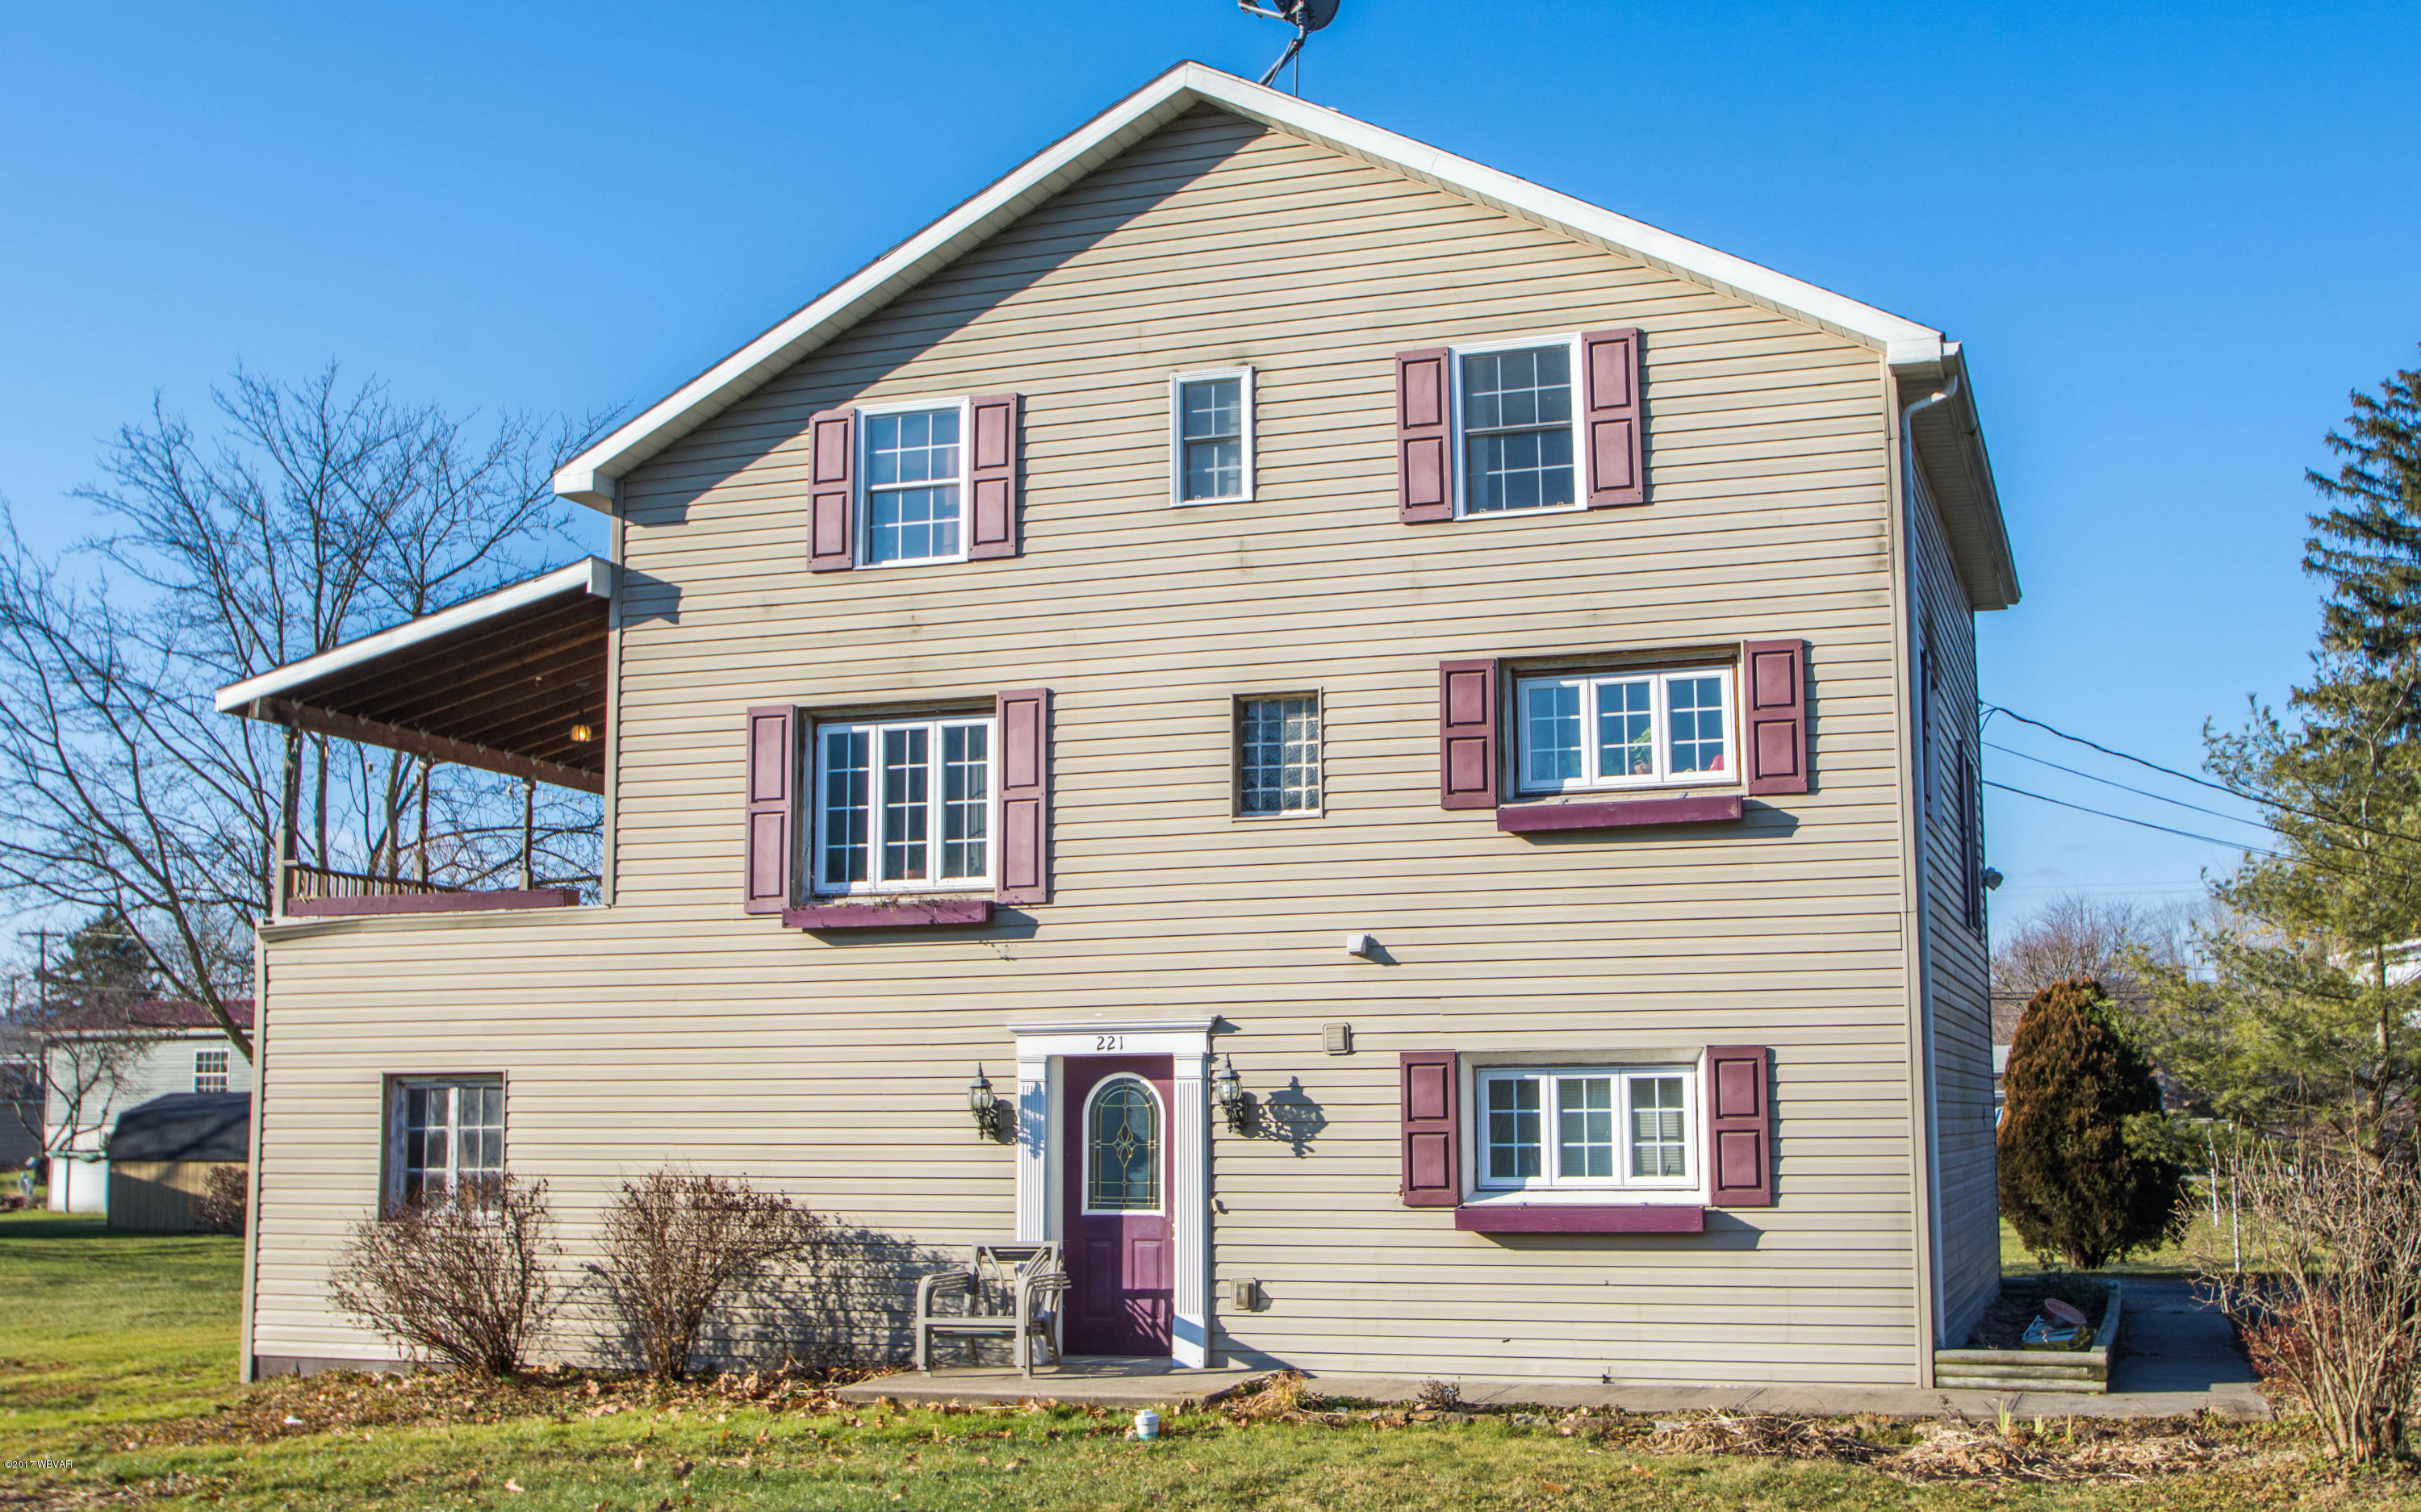 221 FREDERICK STREET,Mill Hall,PA 17751,3 Bedrooms Bedrooms,3 BathroomsBathrooms,Residential,FREDERICK,WB-82823